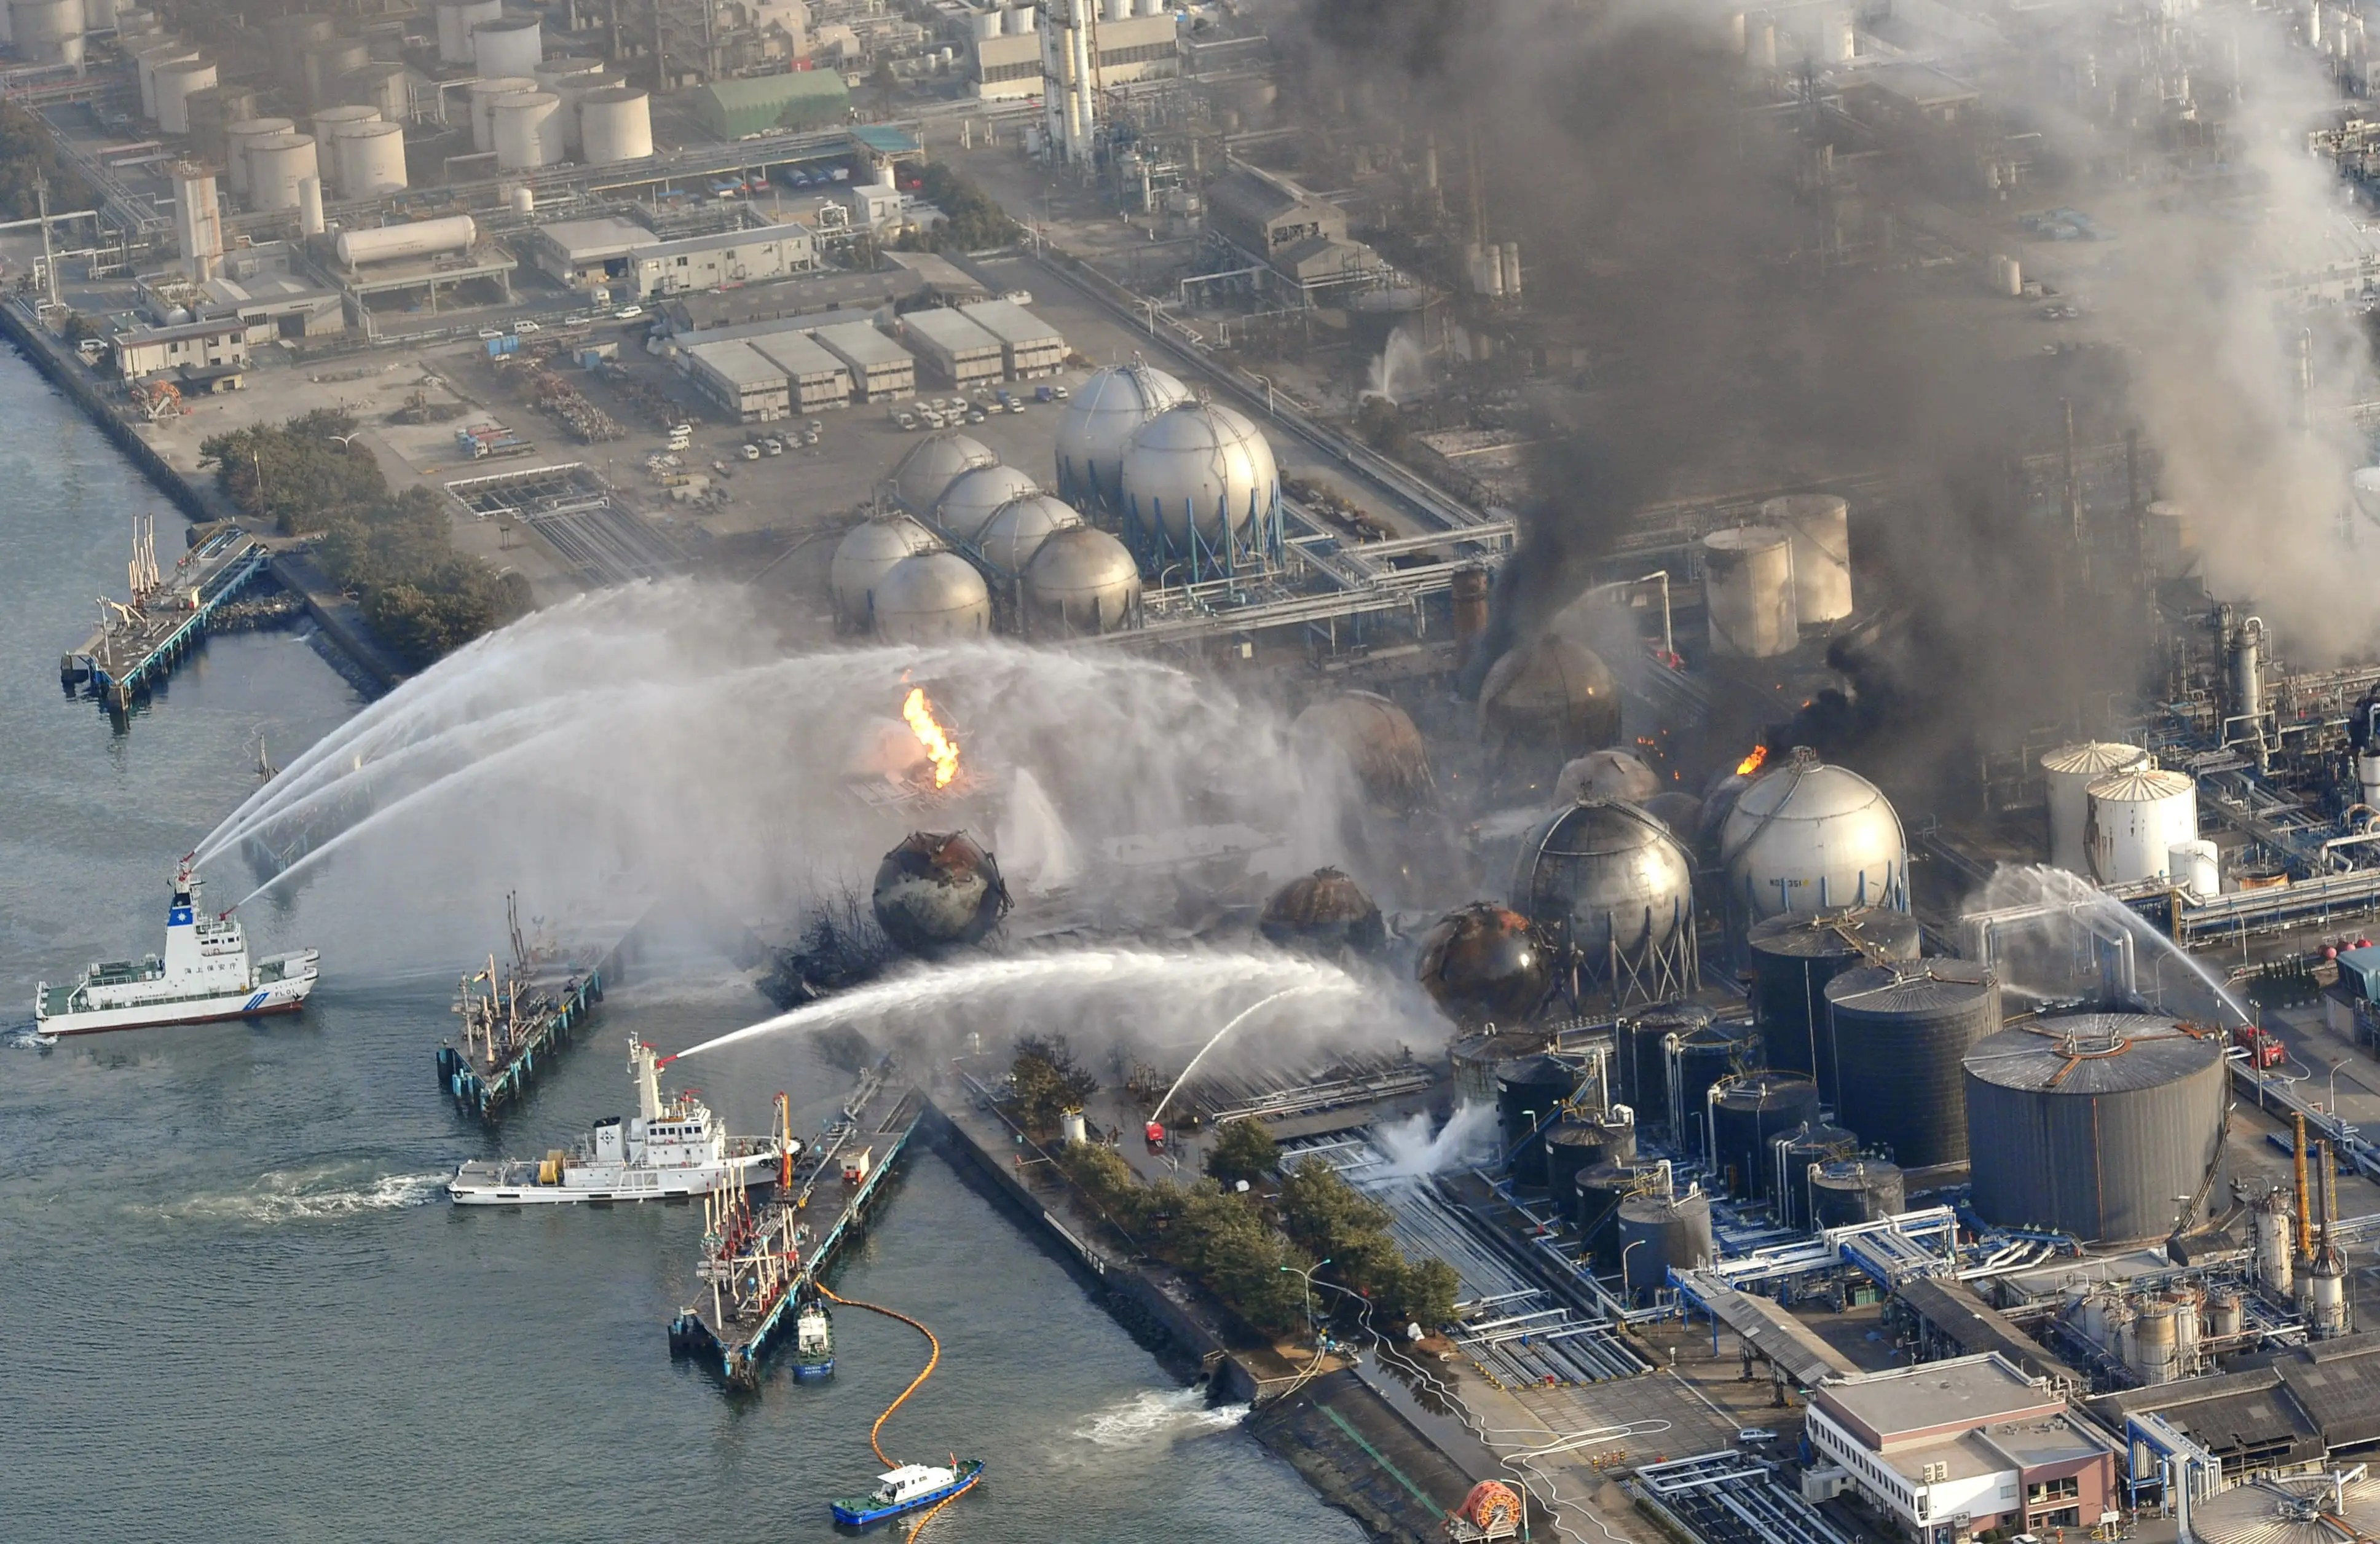 A 2011 tsunami created a nuclear meltdown at the Fukushima Daiichi Nuclear Station in Japan, garnering the world's attention. Lesser known was tsunami-related damage to Japan's fossil fuel energy infrastructure, including this facility near Tokyo.